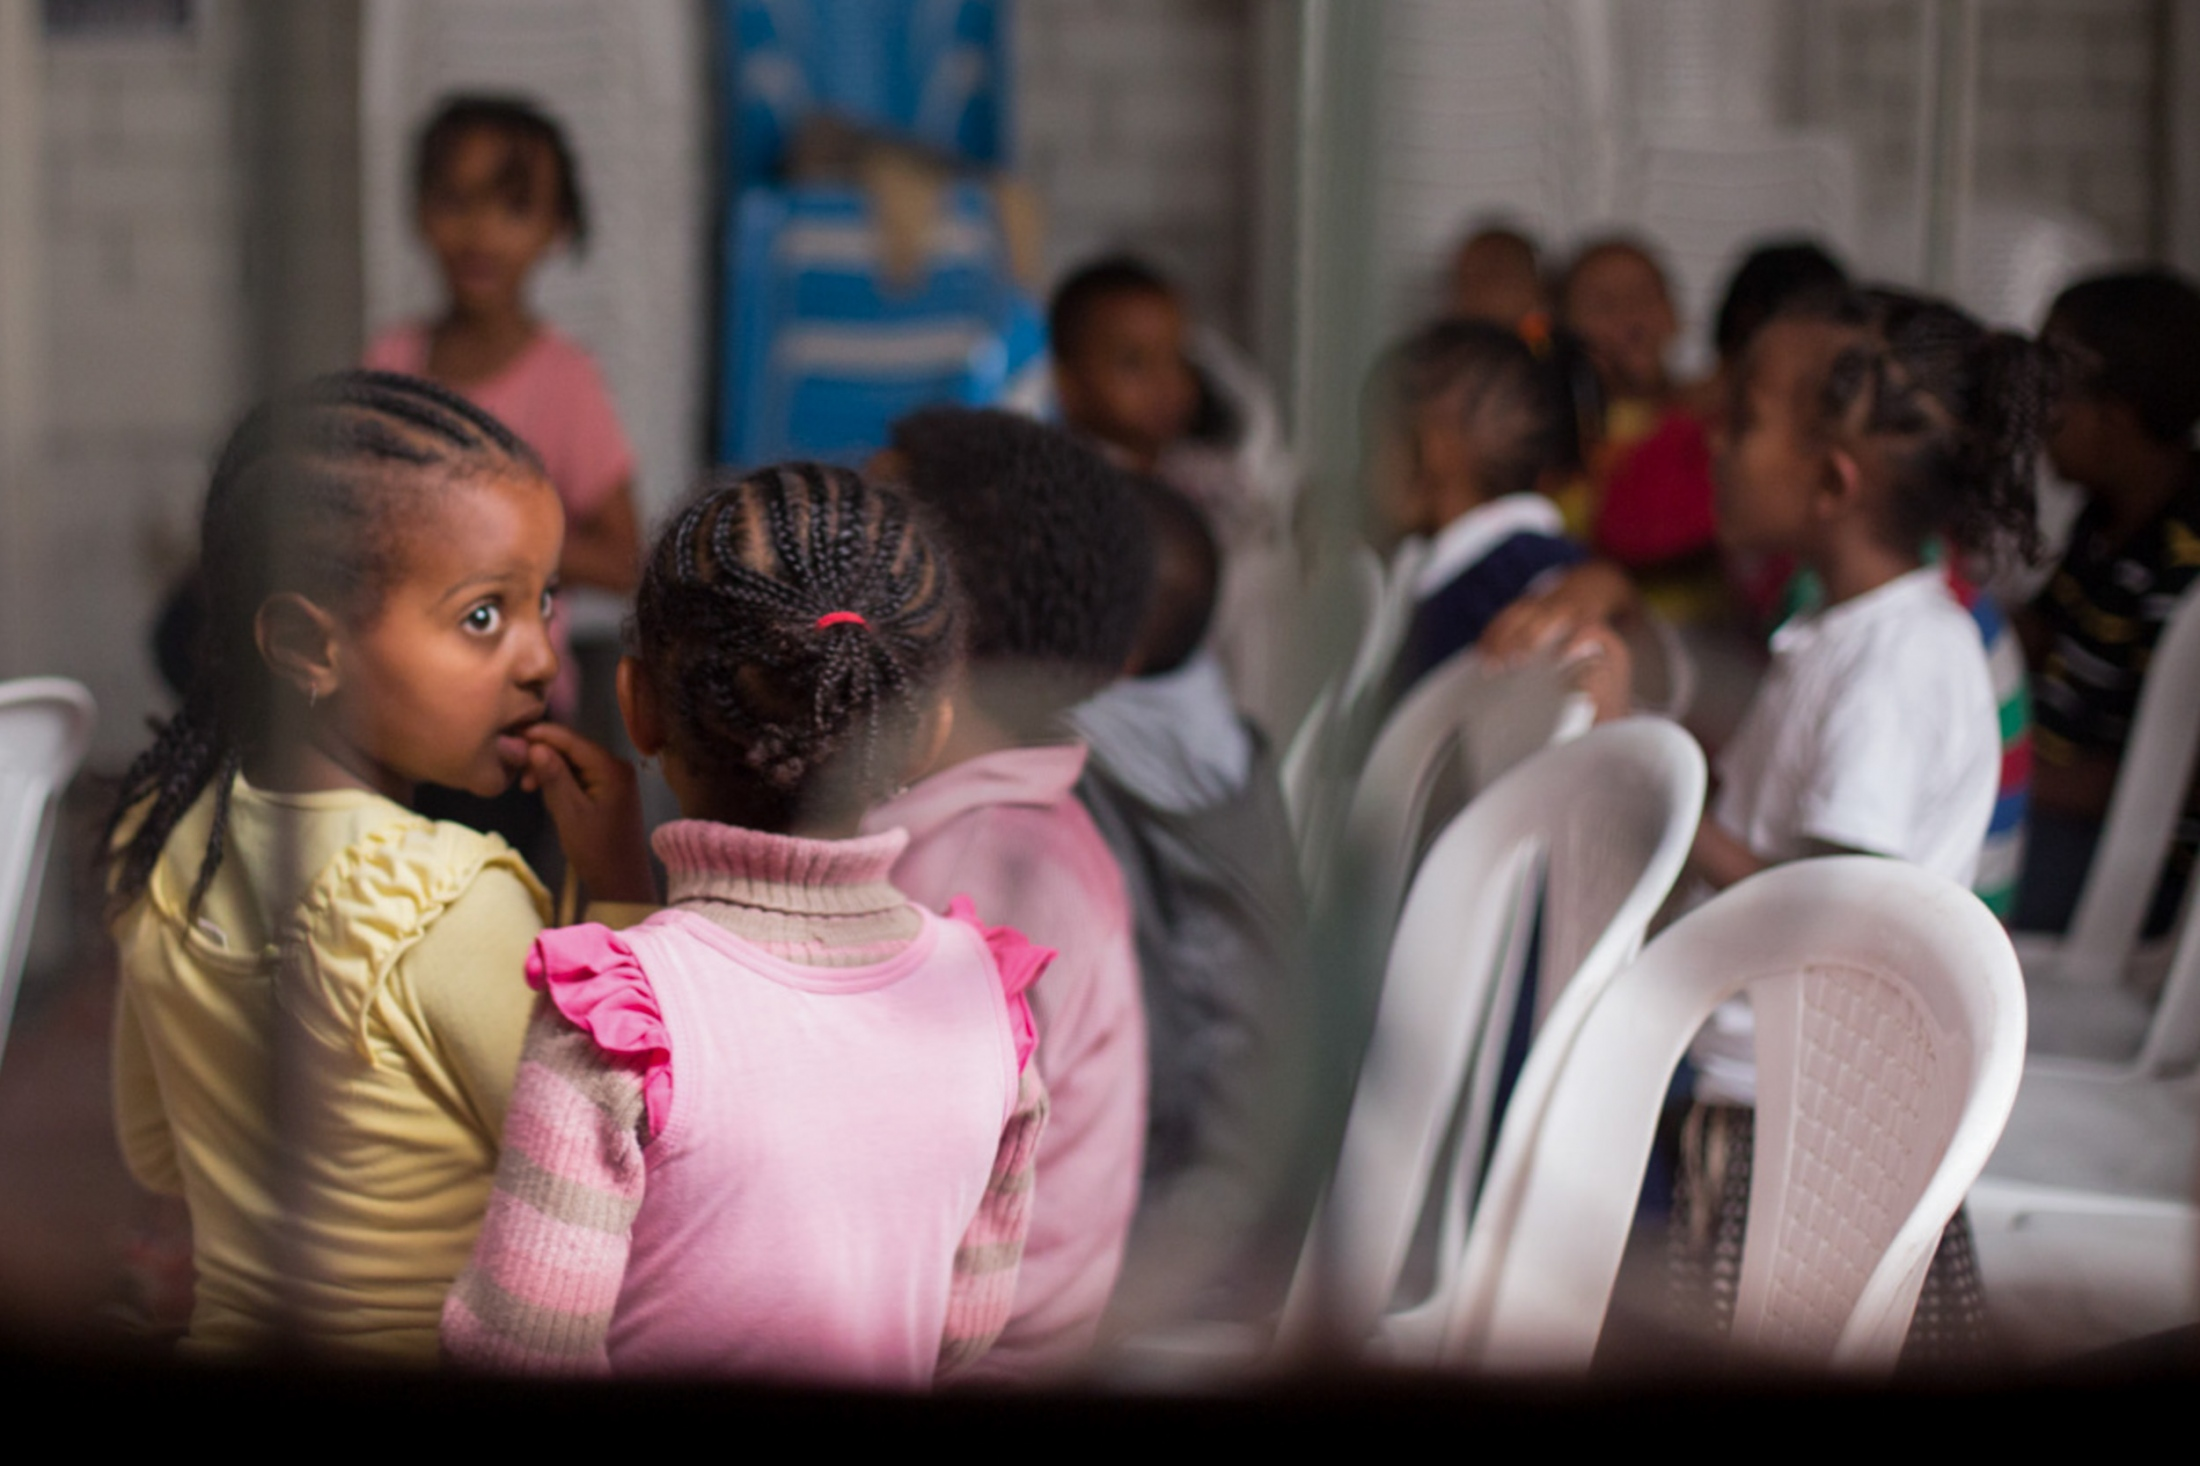 The place of sanctuary, a look into the main building of the community living on the outskirts of Addis Abba. It is being used as an afternoon music lesson for younger children. This photograph was taken from outside through some barbed wire put up to protect the community from xenophobic attacks. Fear of the other is deep-rooted in Ethiopia.